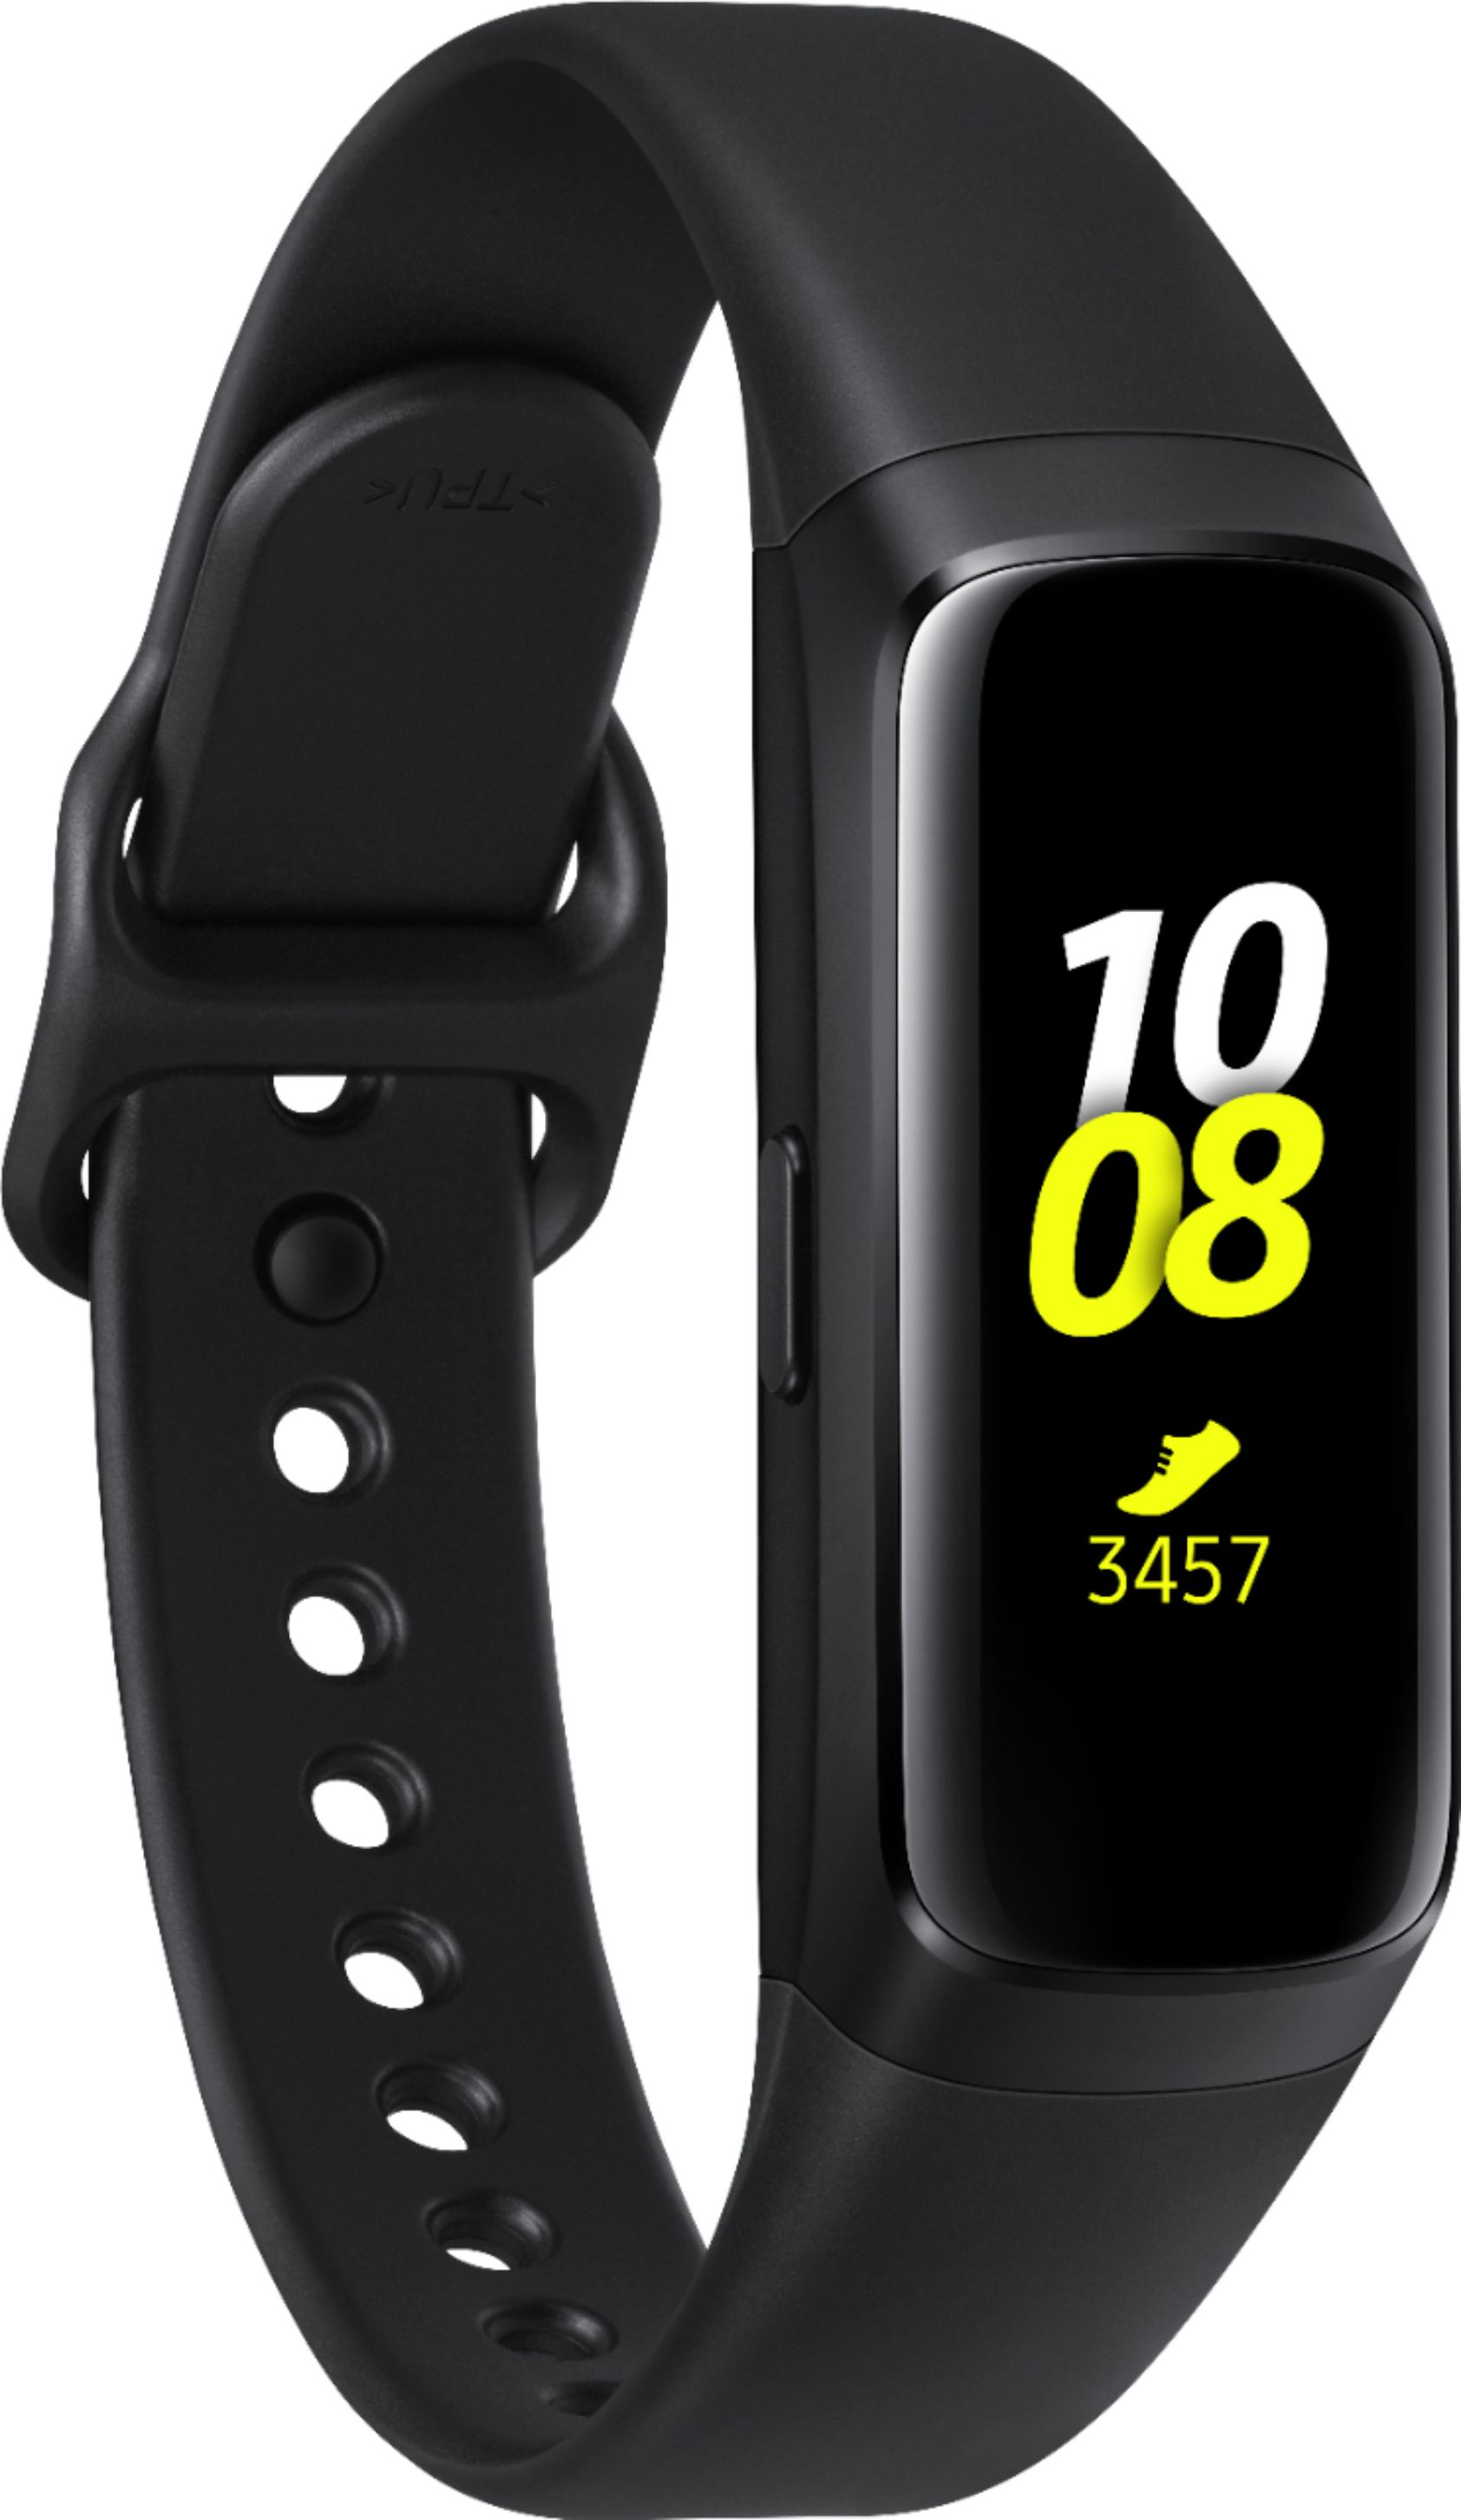 Samsung - Galaxy Fit Activity Tracker + Heart Rate - Black